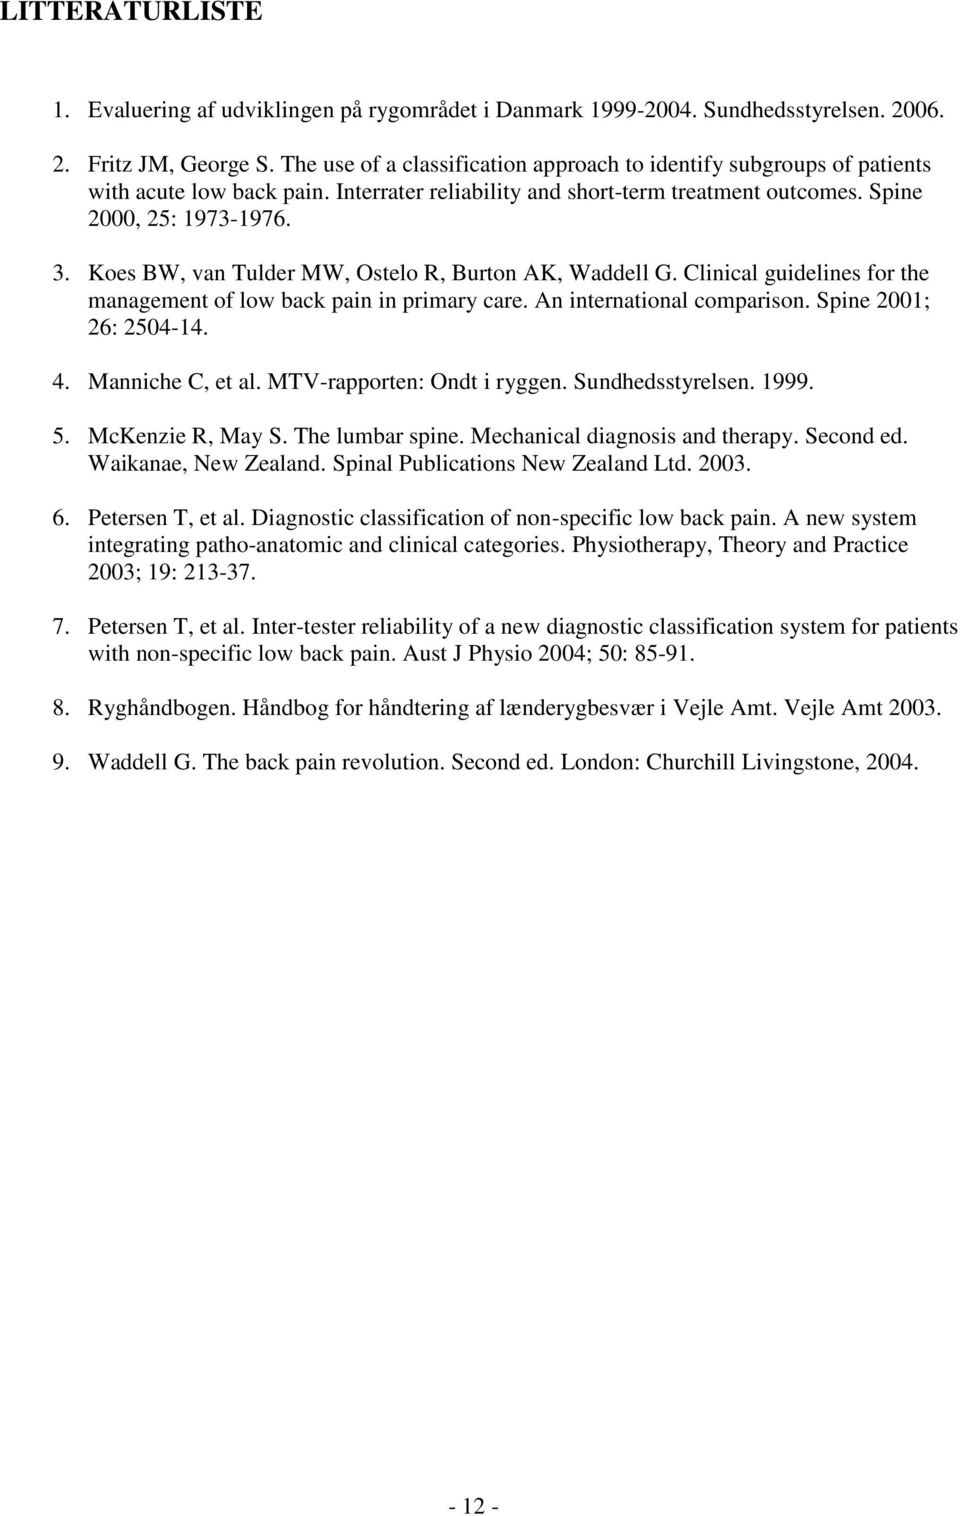 Koes BW, van Tulder MW, Ostelo R, Burton AK, Waddell G. Clinical guidelines for the management of low back pain in primary care. An international comparison. Spine 2001; 26: 2504-14. 4.